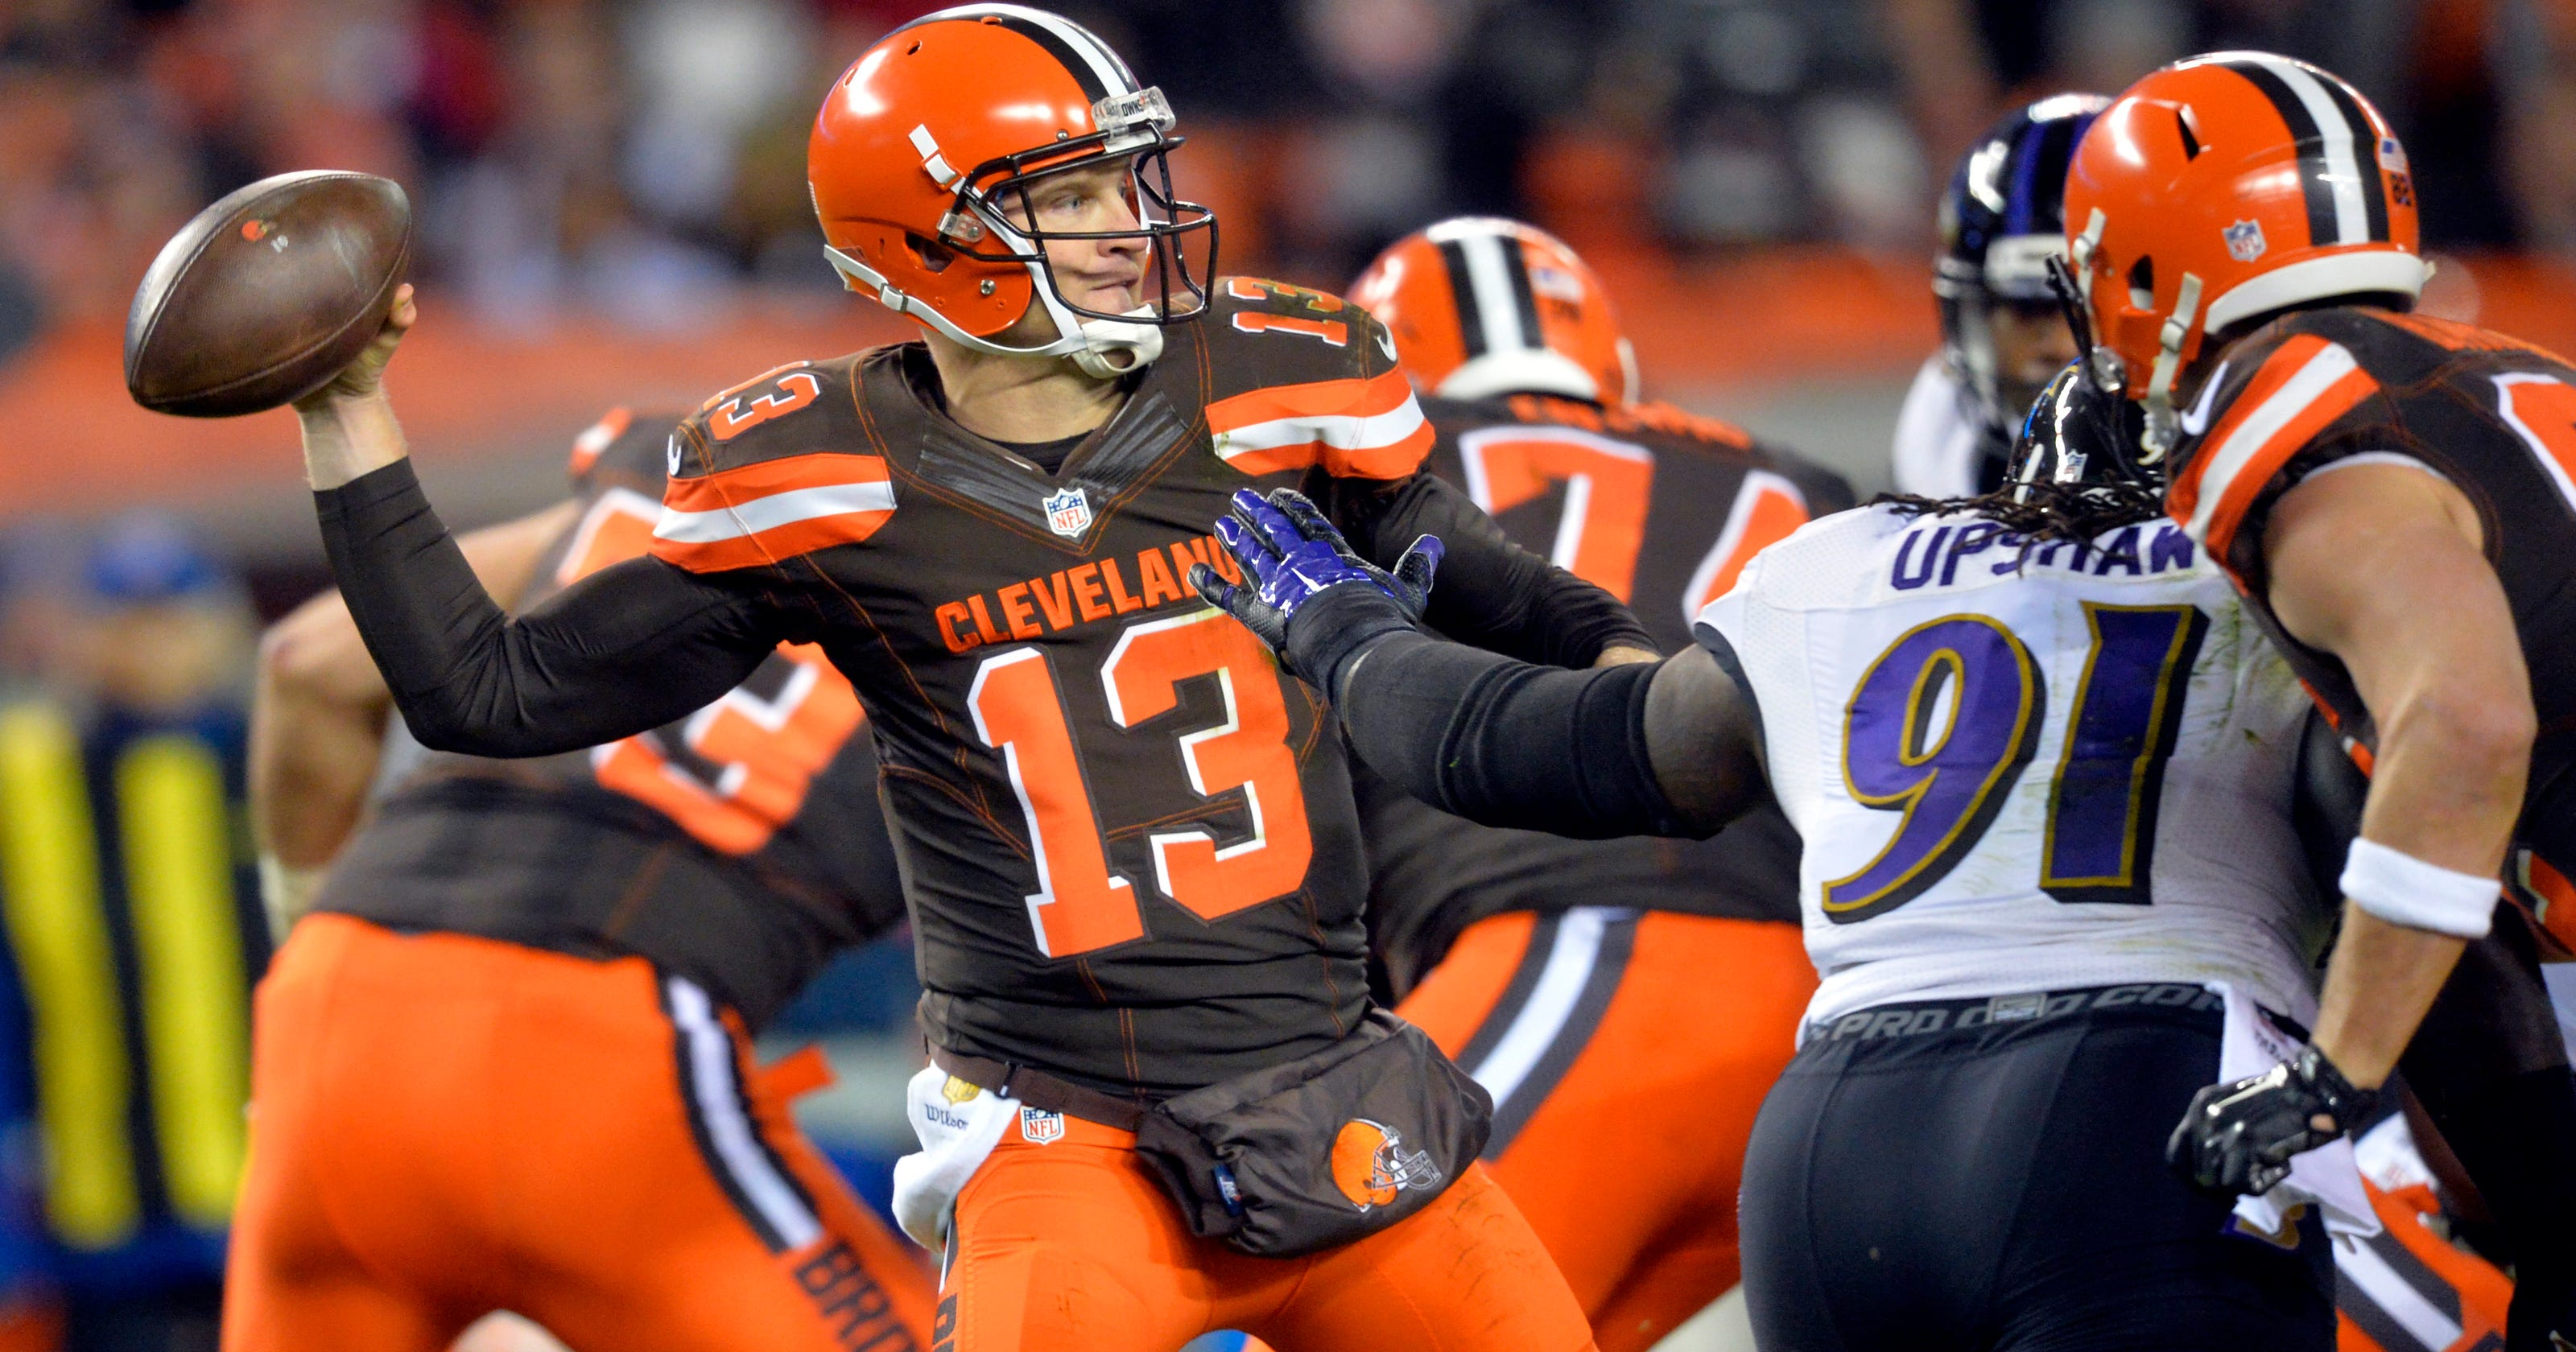 abac895e8a2 Browns' Josh McCown done for season with broken collarbone